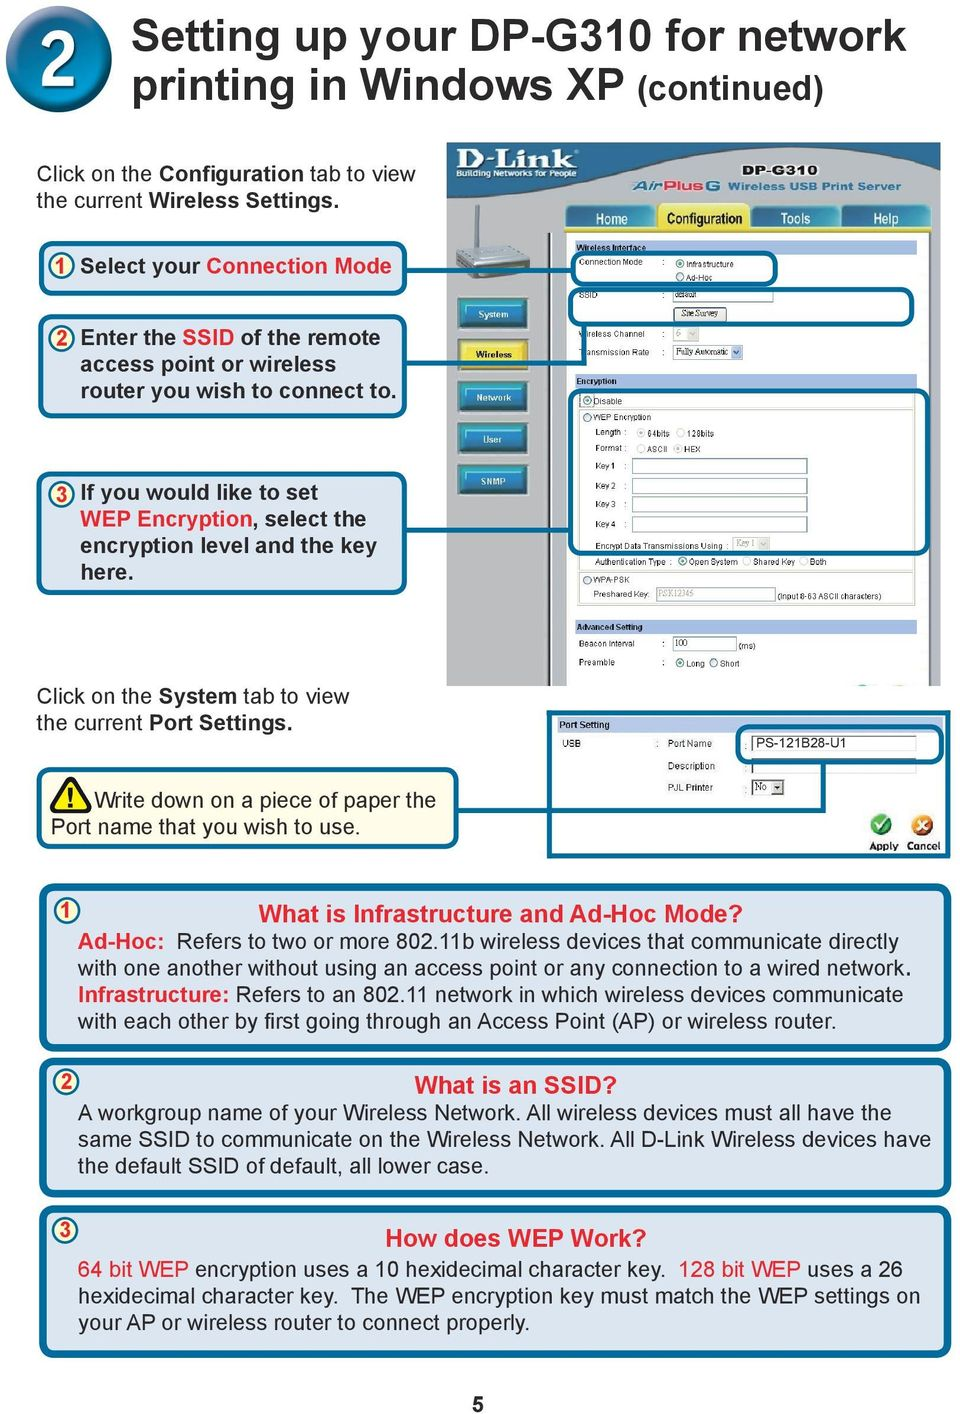 3 If you would like to set WEP Encryption, select the encryption level and the key here. Click on the System tab to view the current Port Settings.